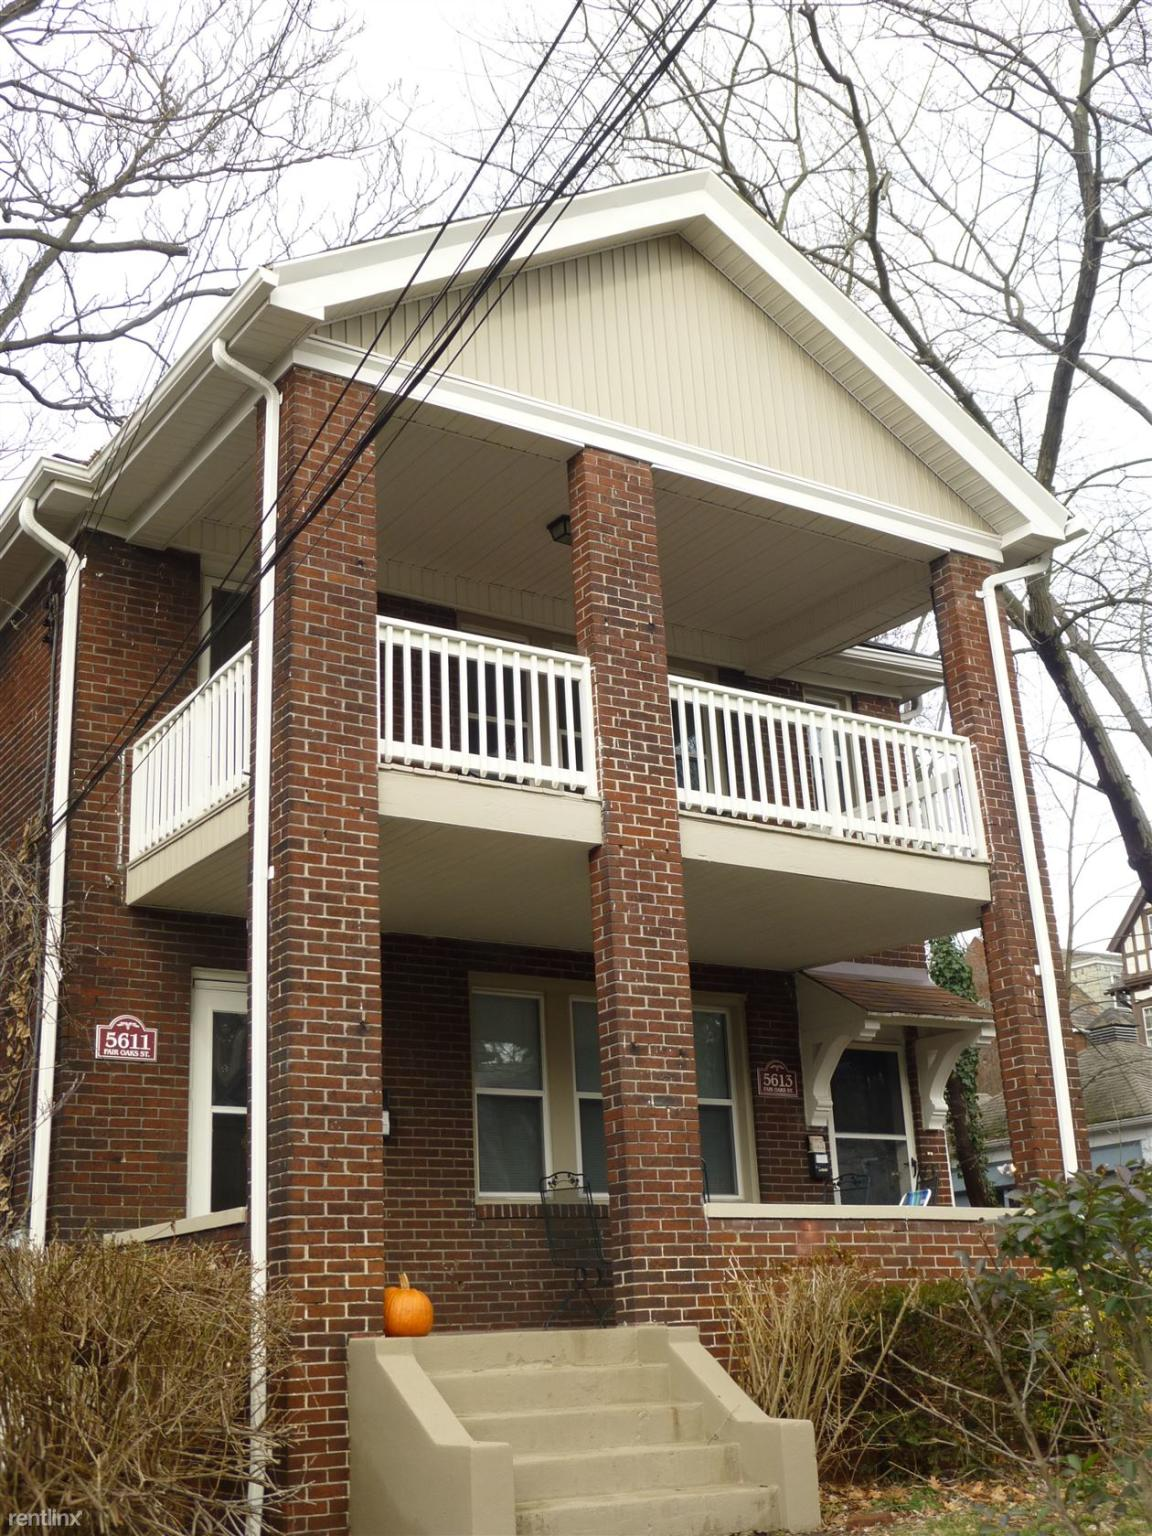 5611 Fair Oaks St For Rent - Pittsburgh, PA | Trulia